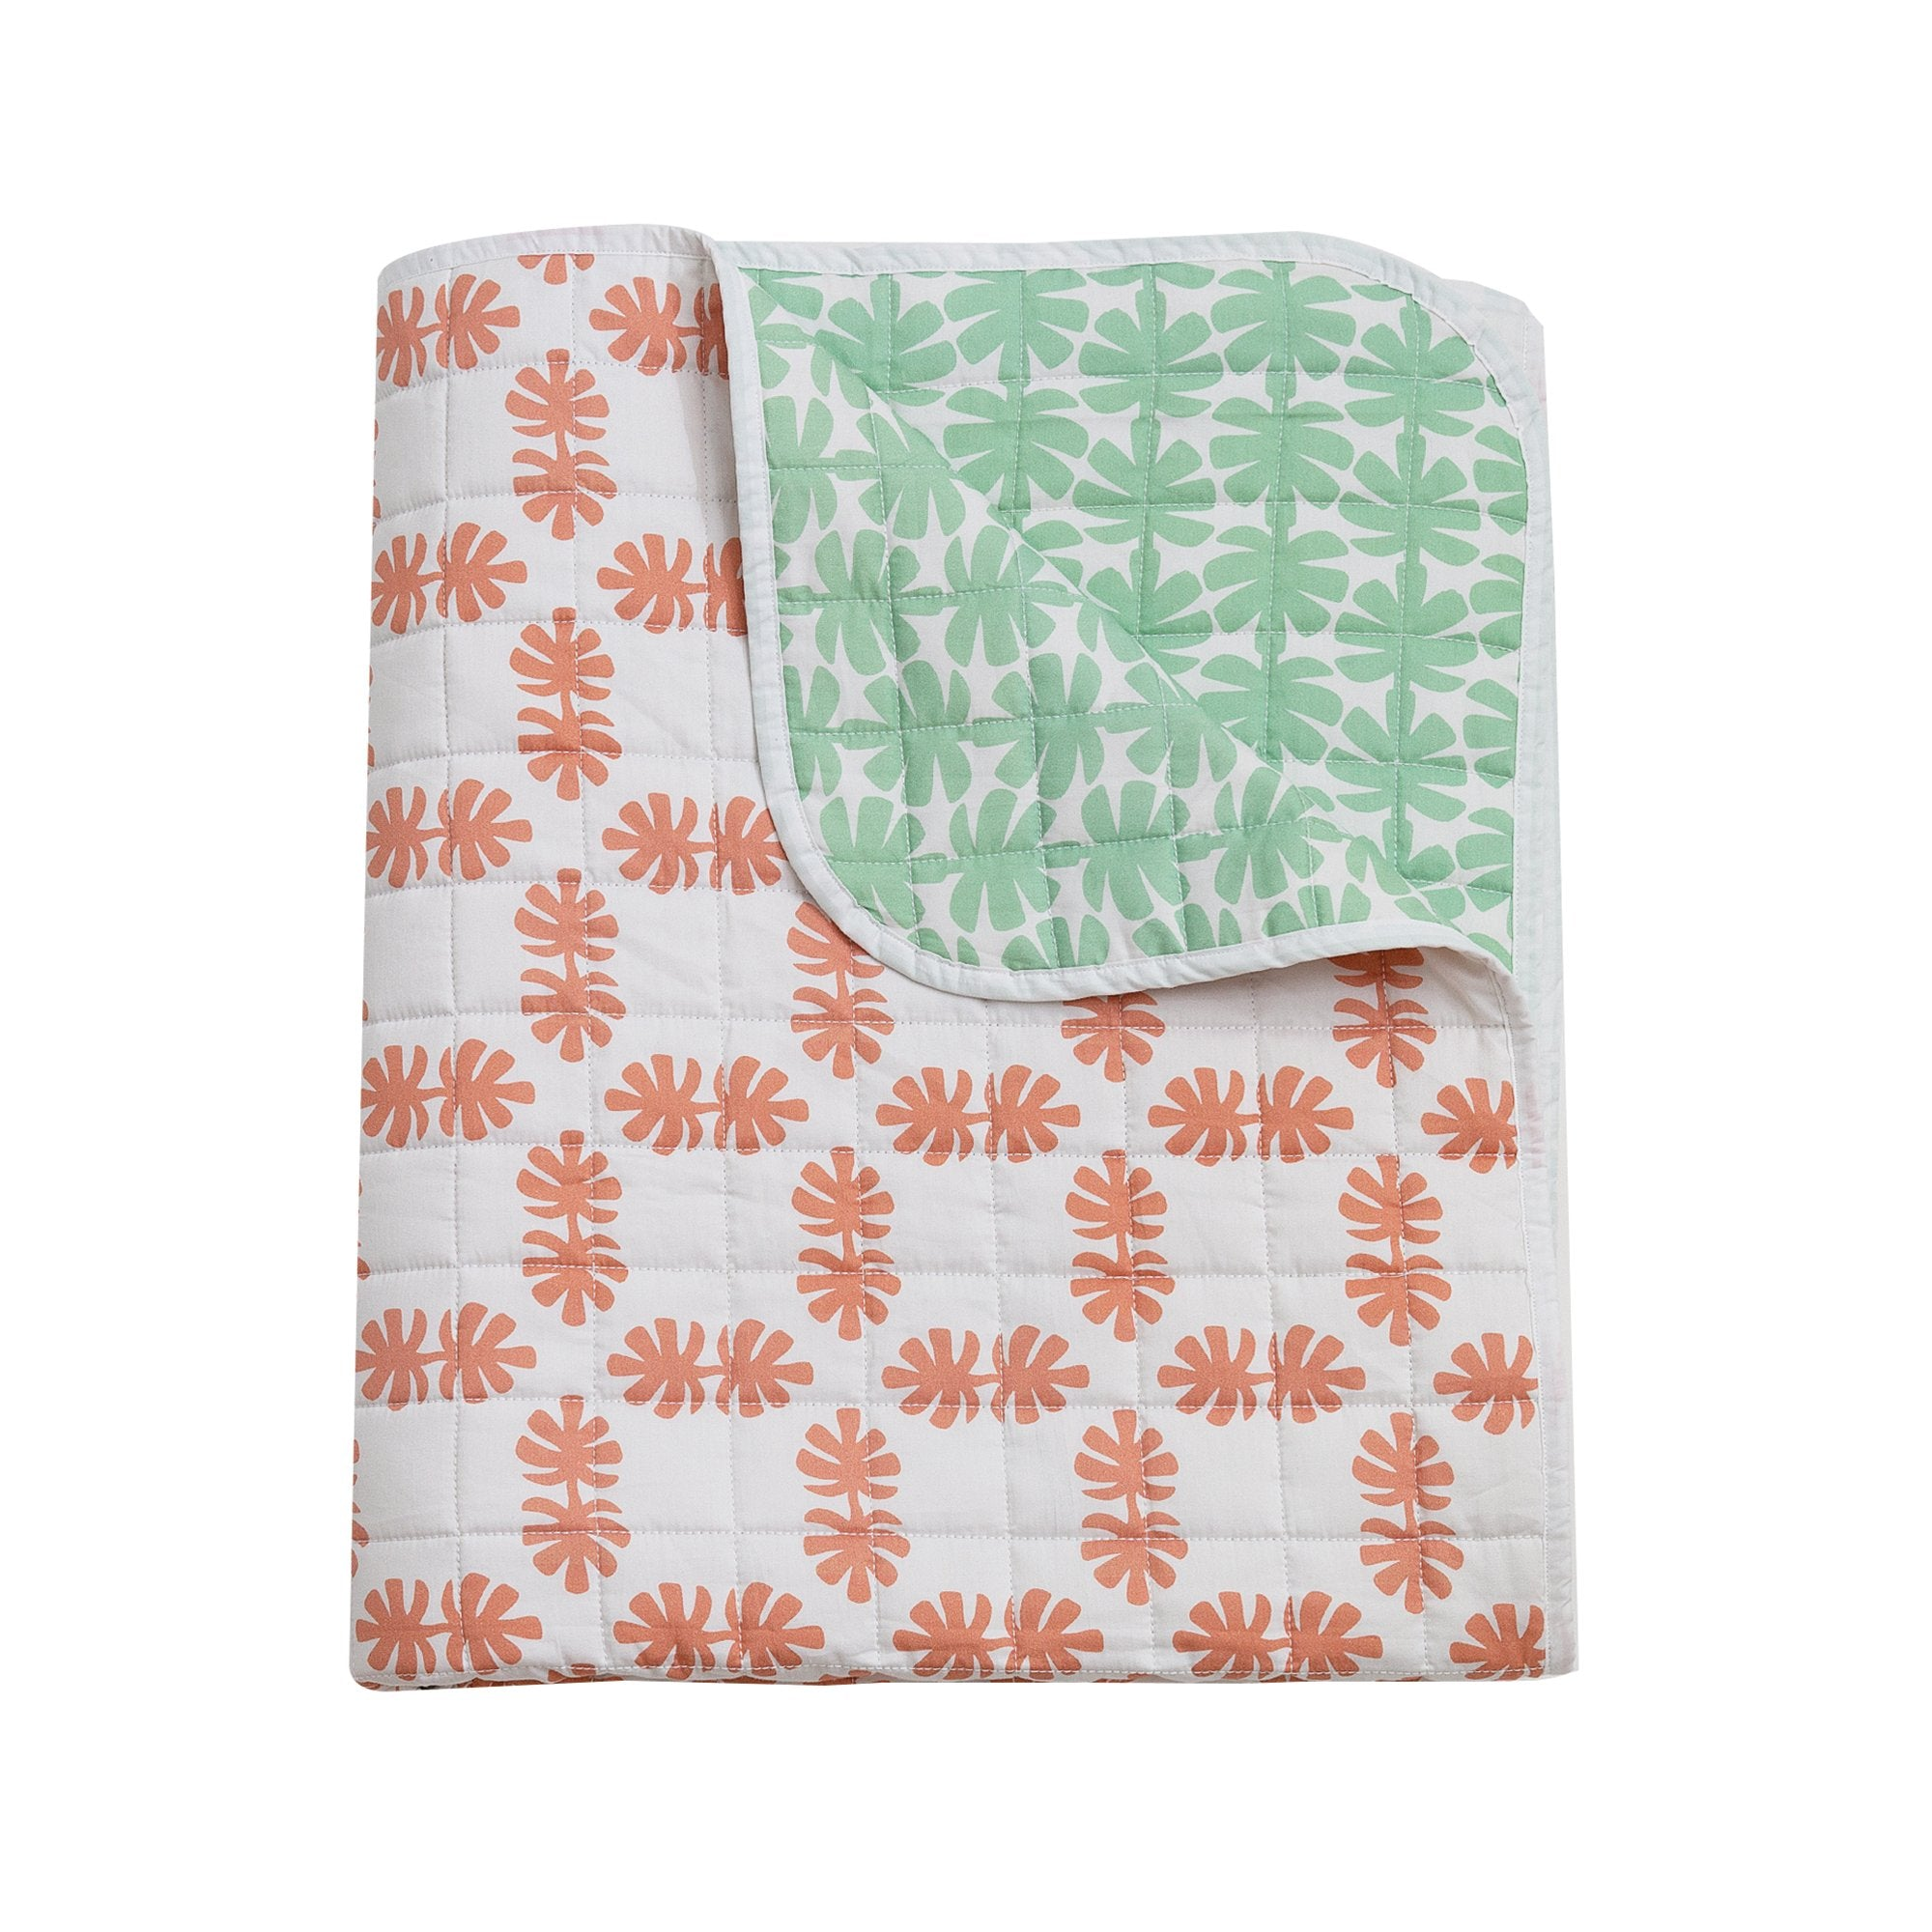 Kikau's Coral and Green Coconut Palm Quilted Bedspread on white background